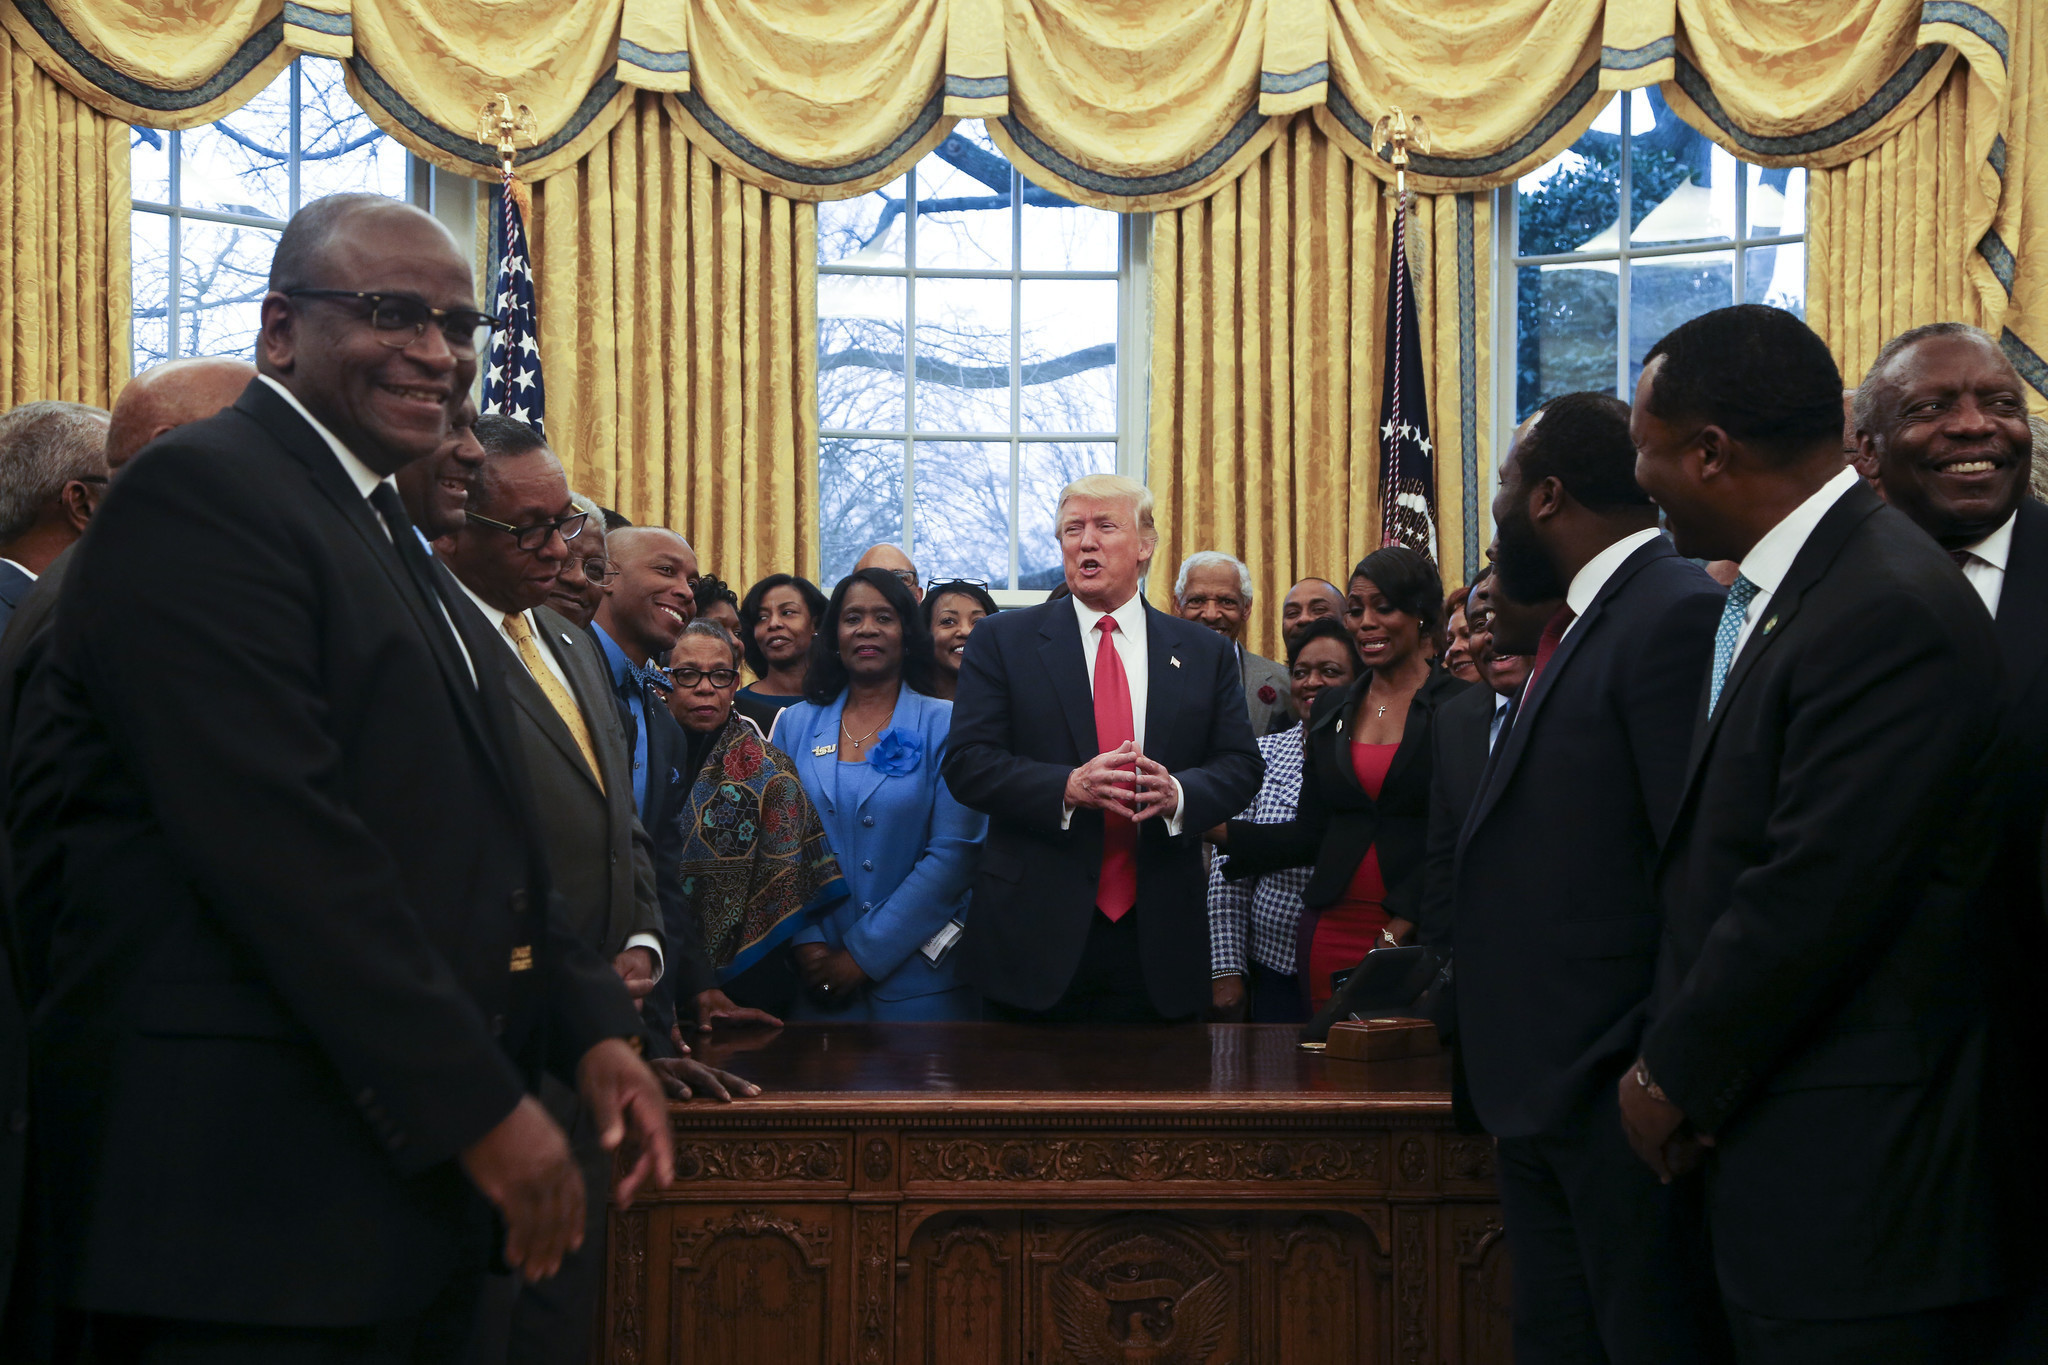 Historically black colleges view Trump administration warily, but also with some optimism